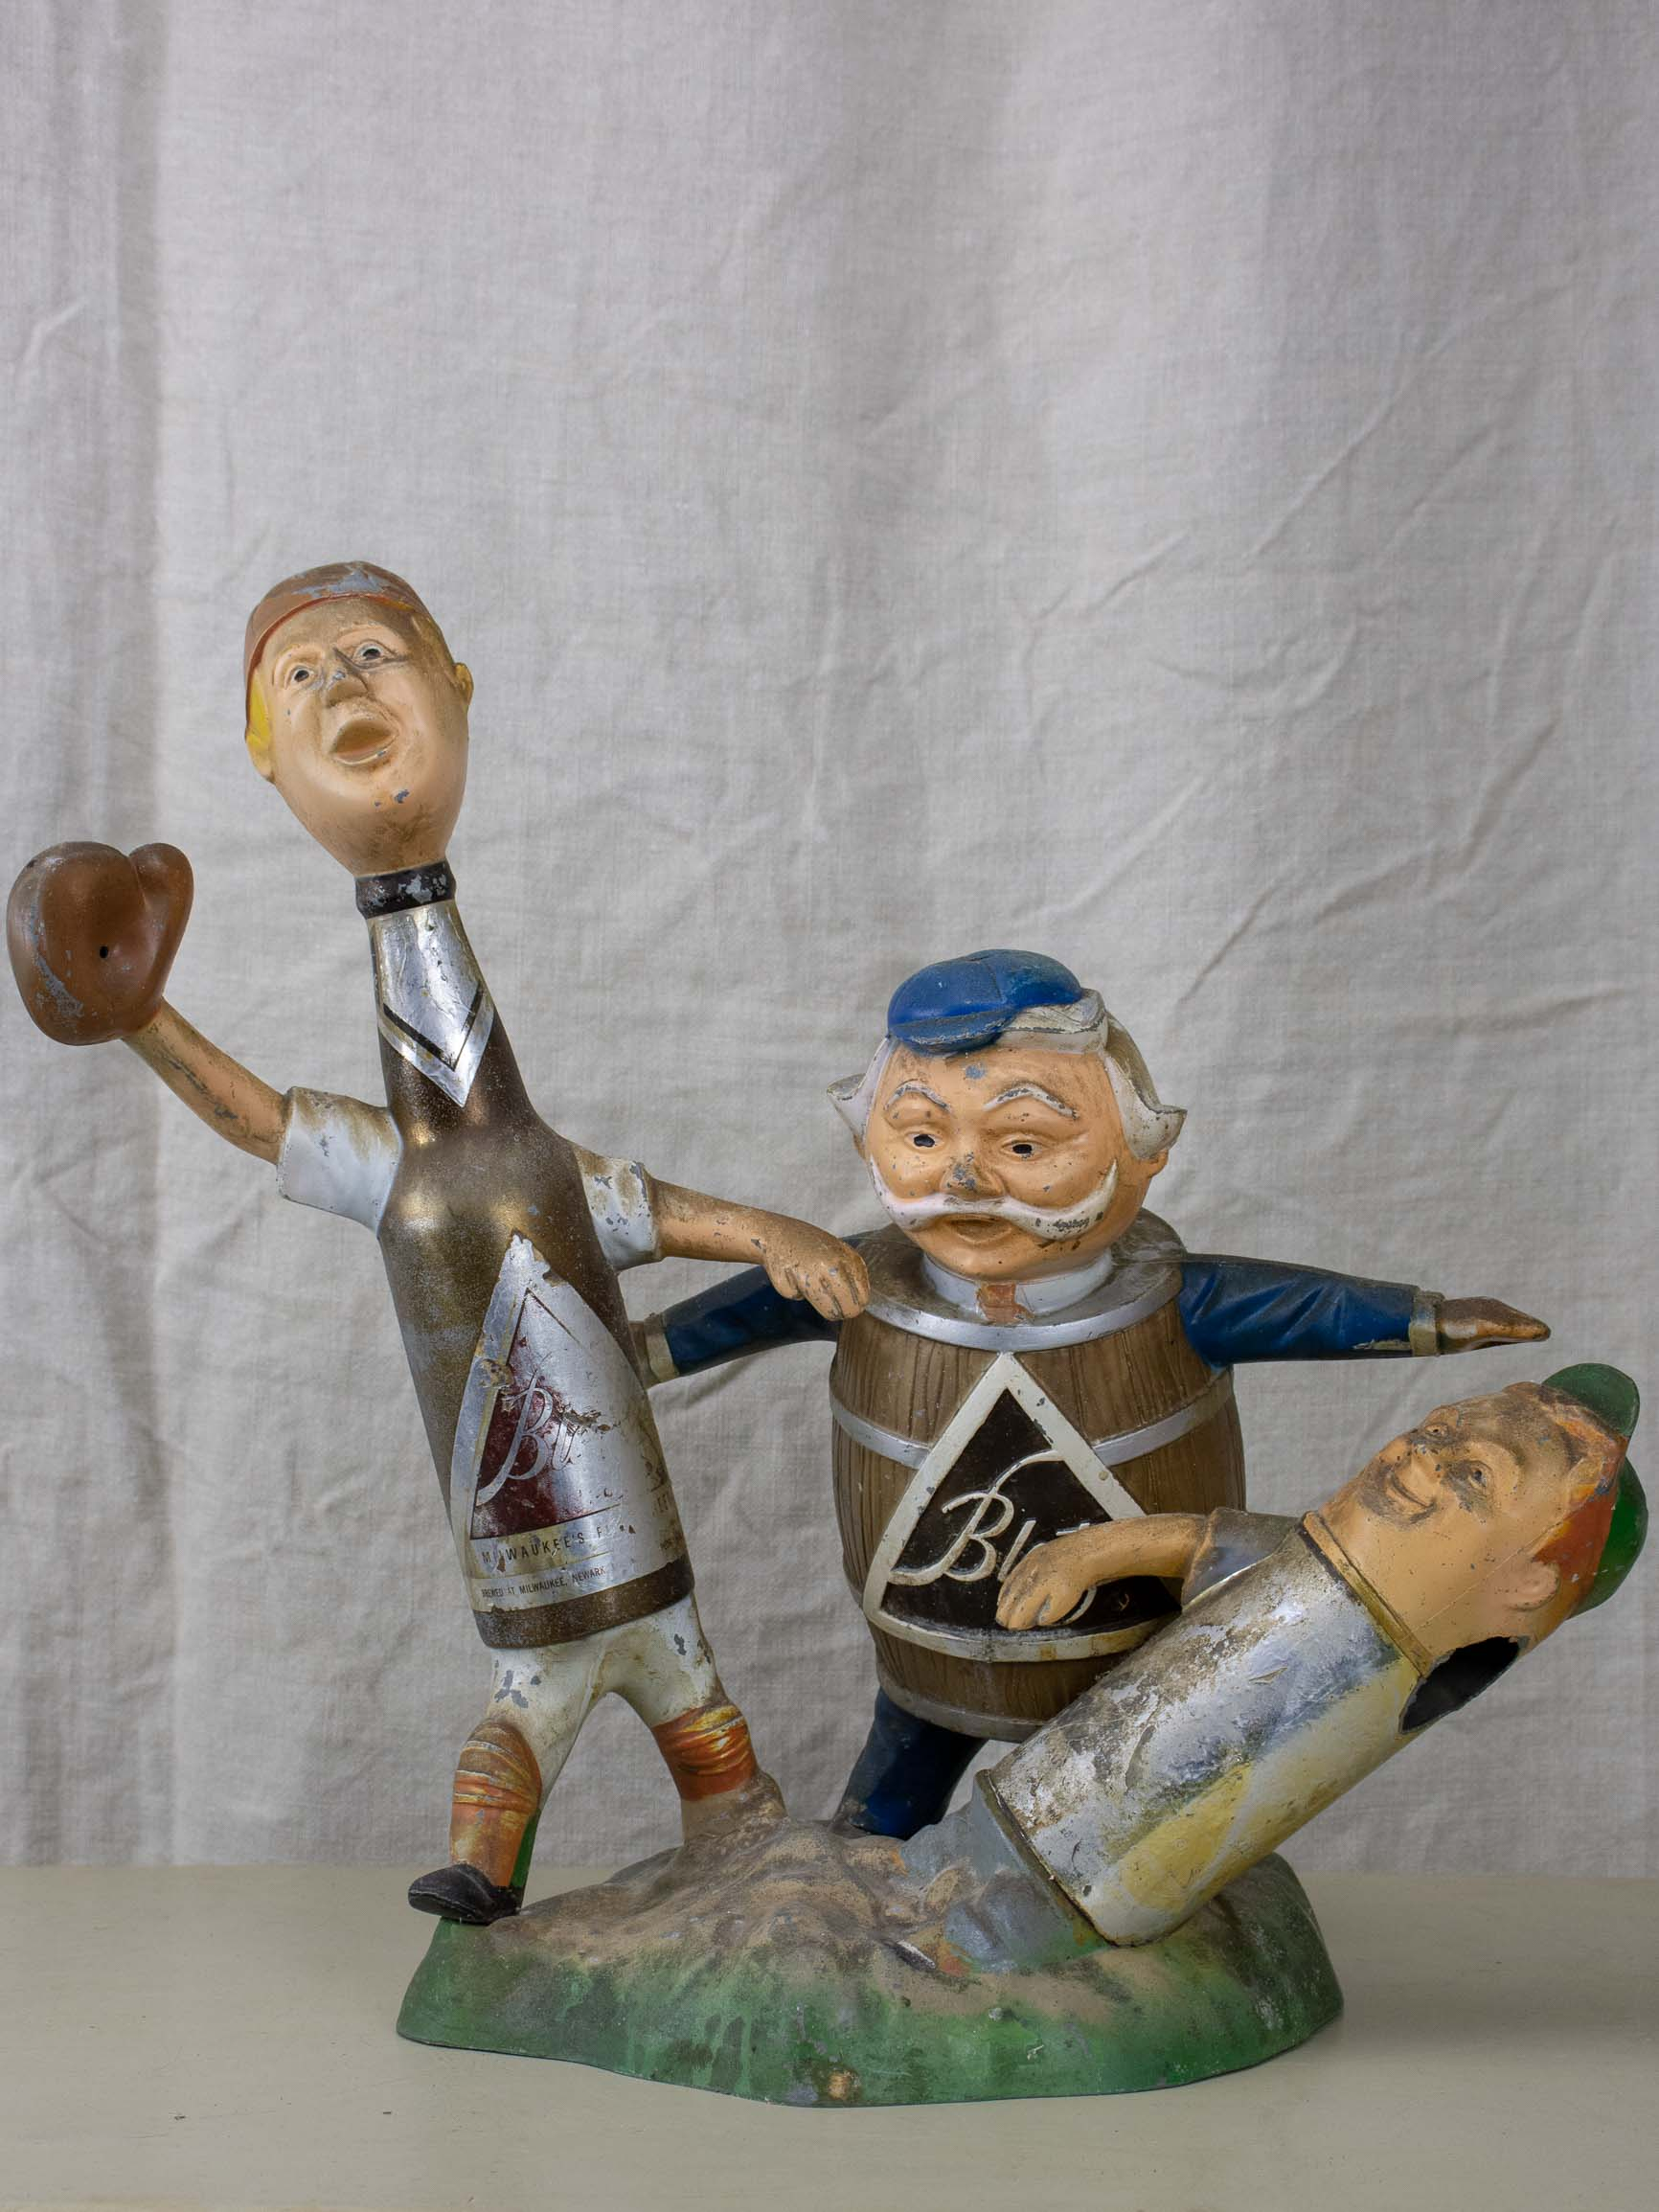 Antique American beer advertising sculpture